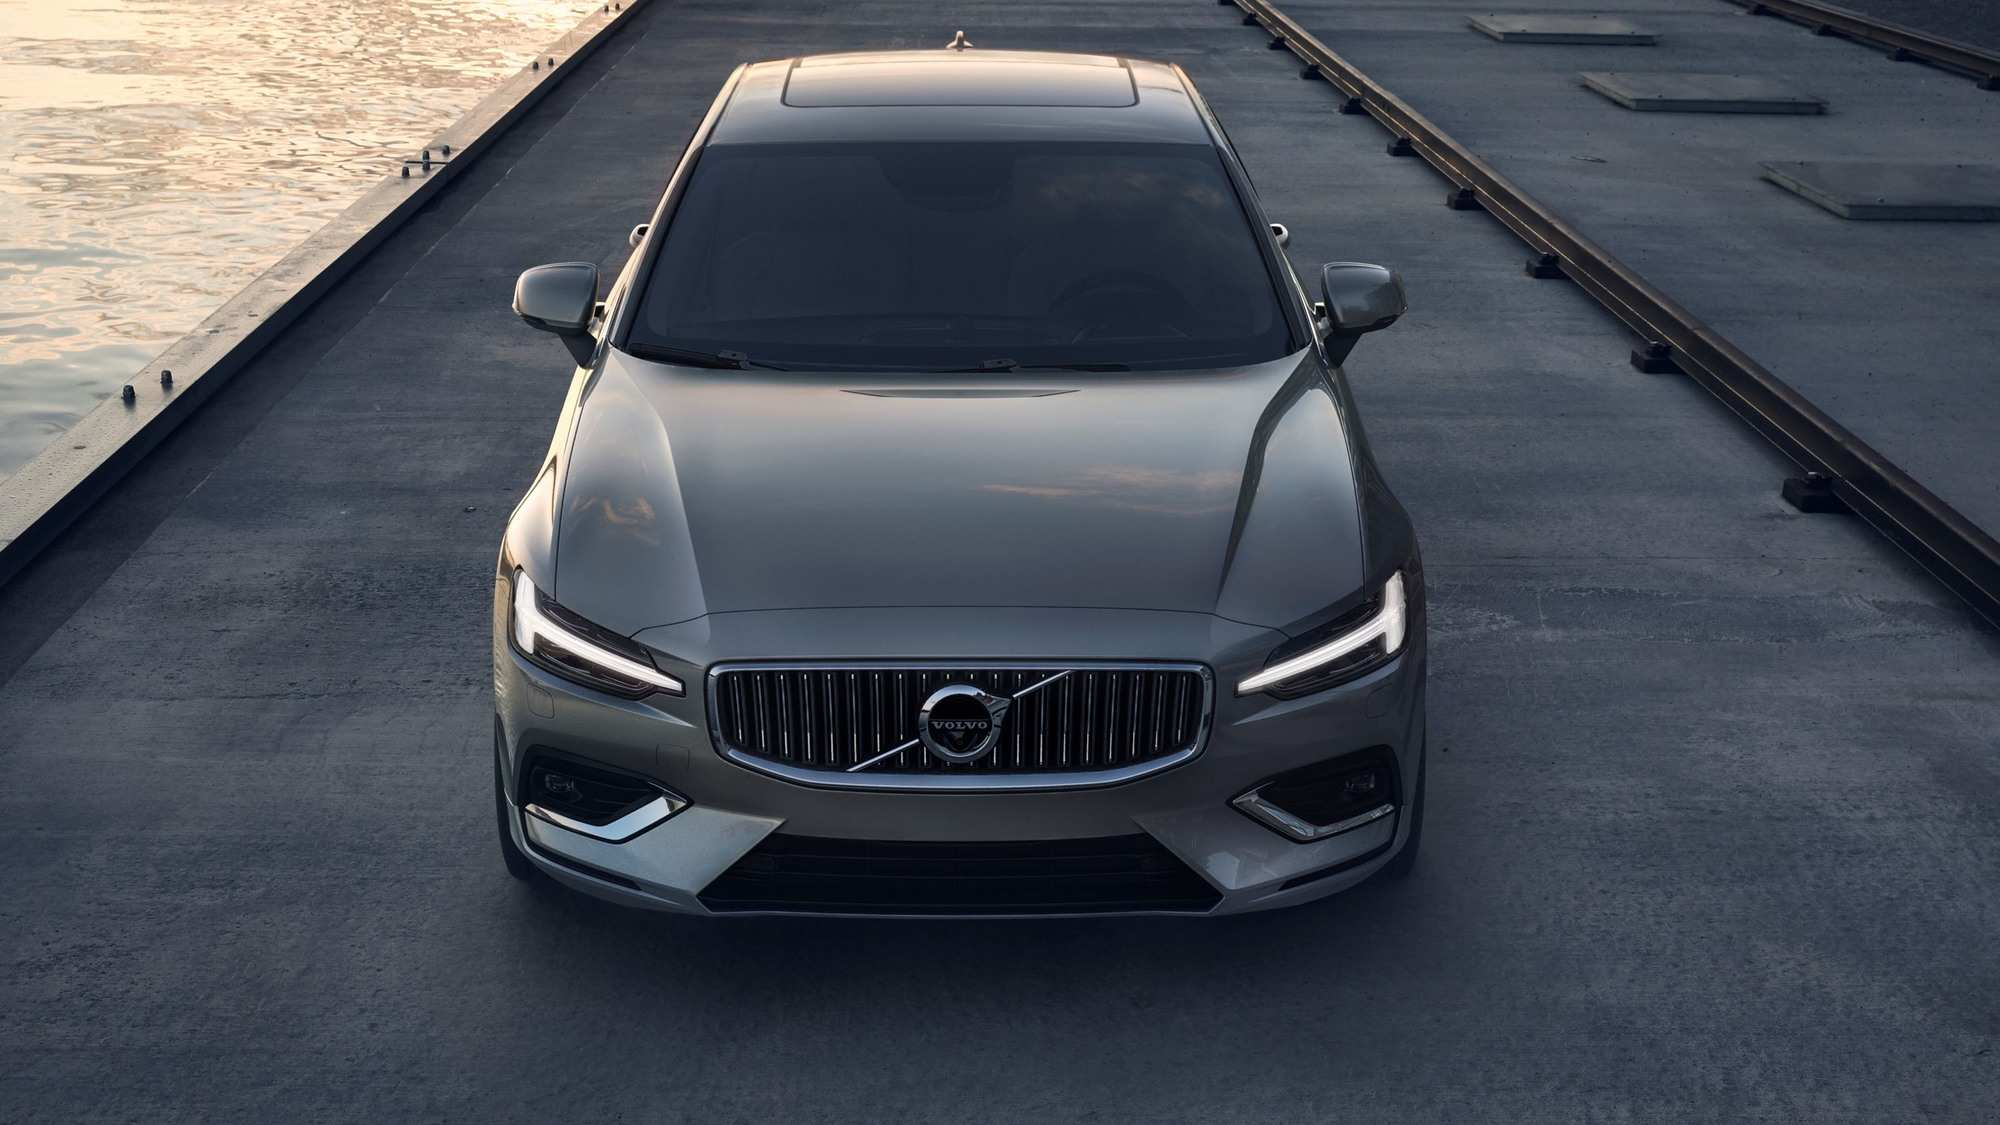 37 Concept of 2019 Volvo S60 Redesign History for 2019 Volvo S60 Redesign